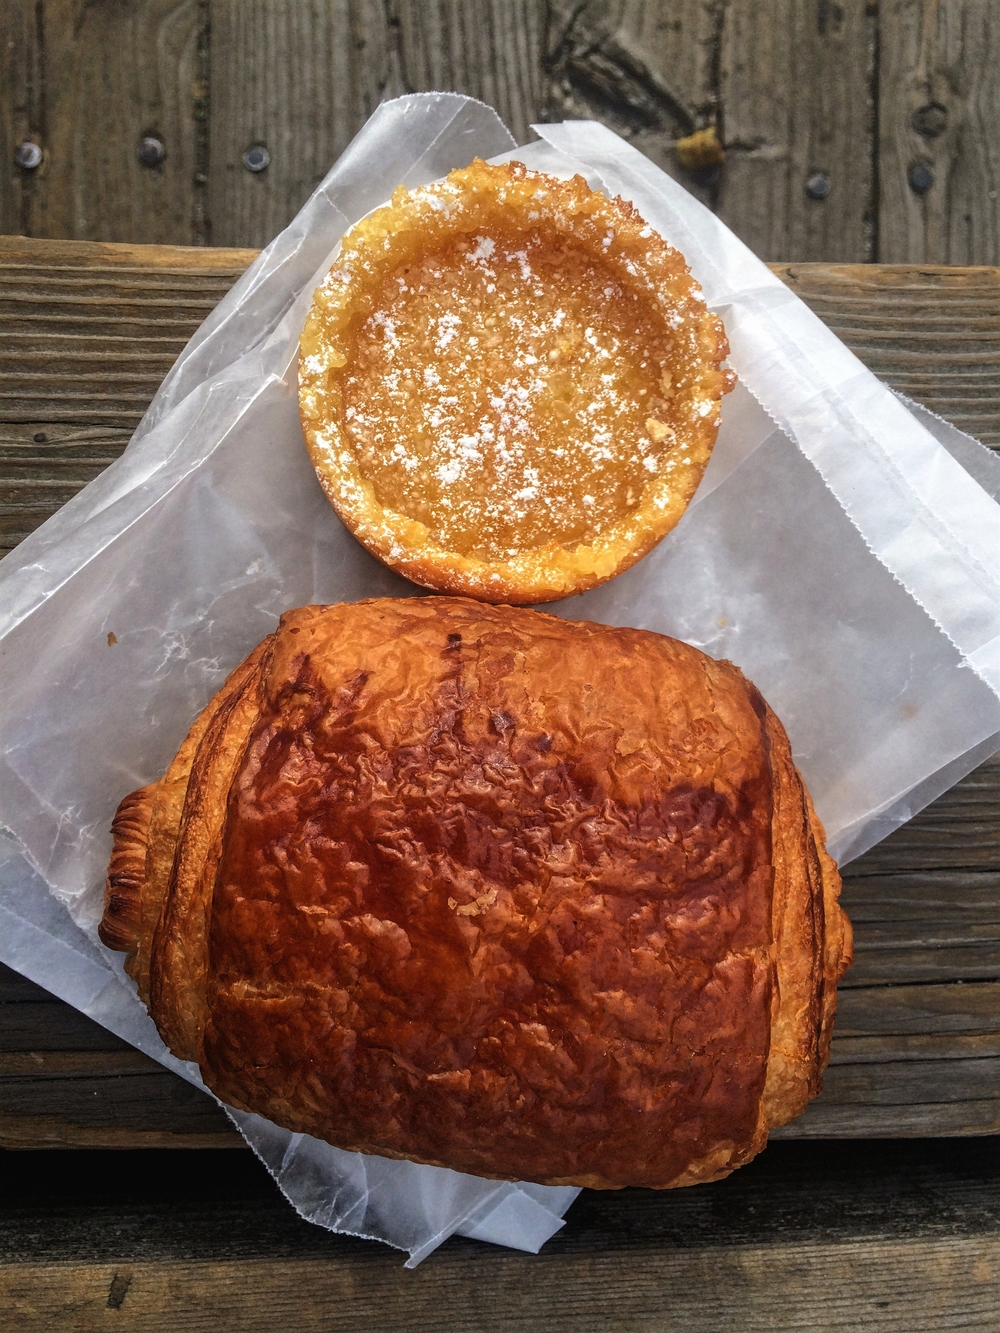 Standard Baking Co.'s lemon tart and pain au chocolat.